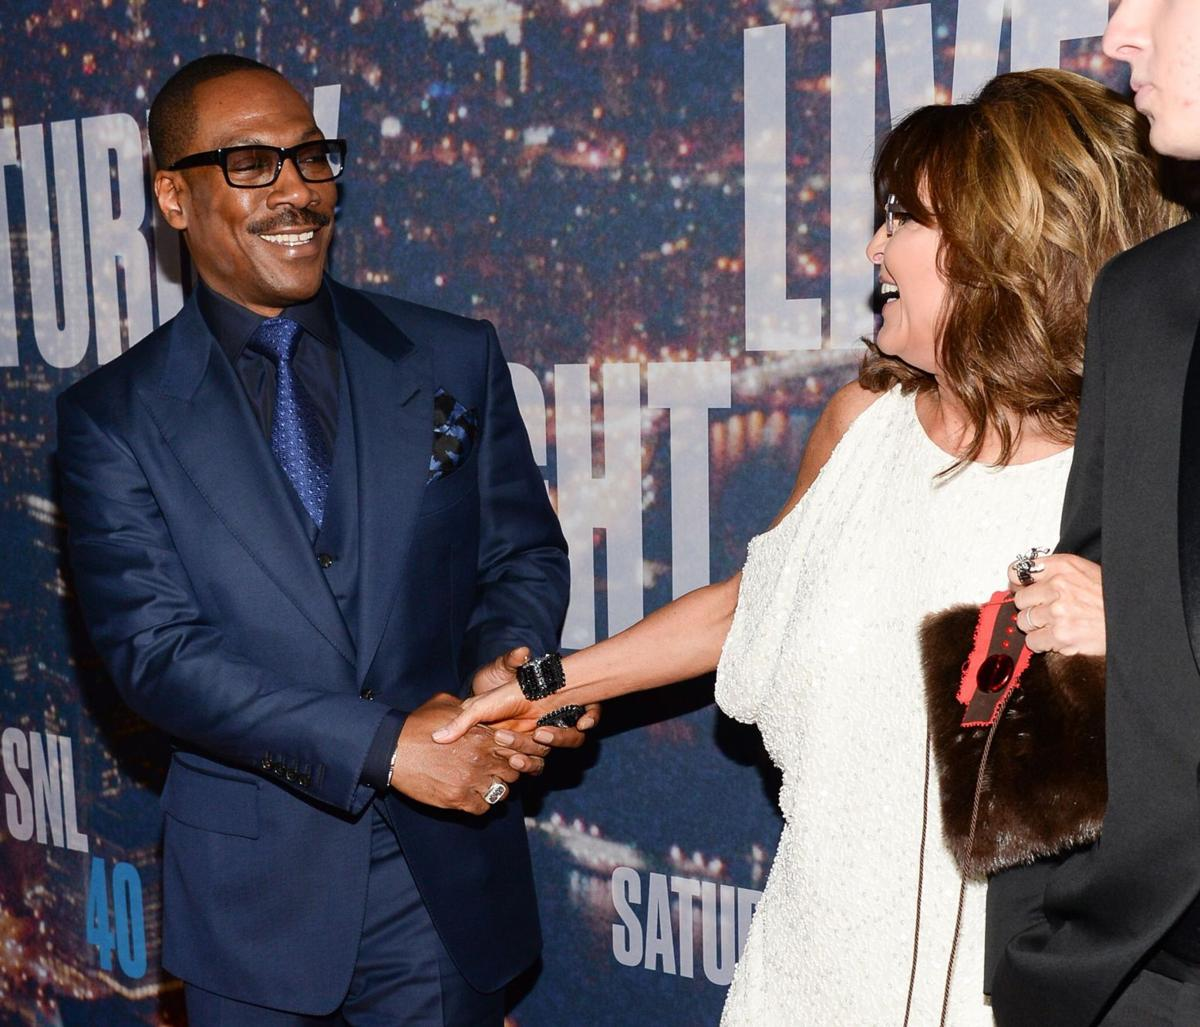 Eddie Murphy said no to Cosby sketch, SNL cast member says